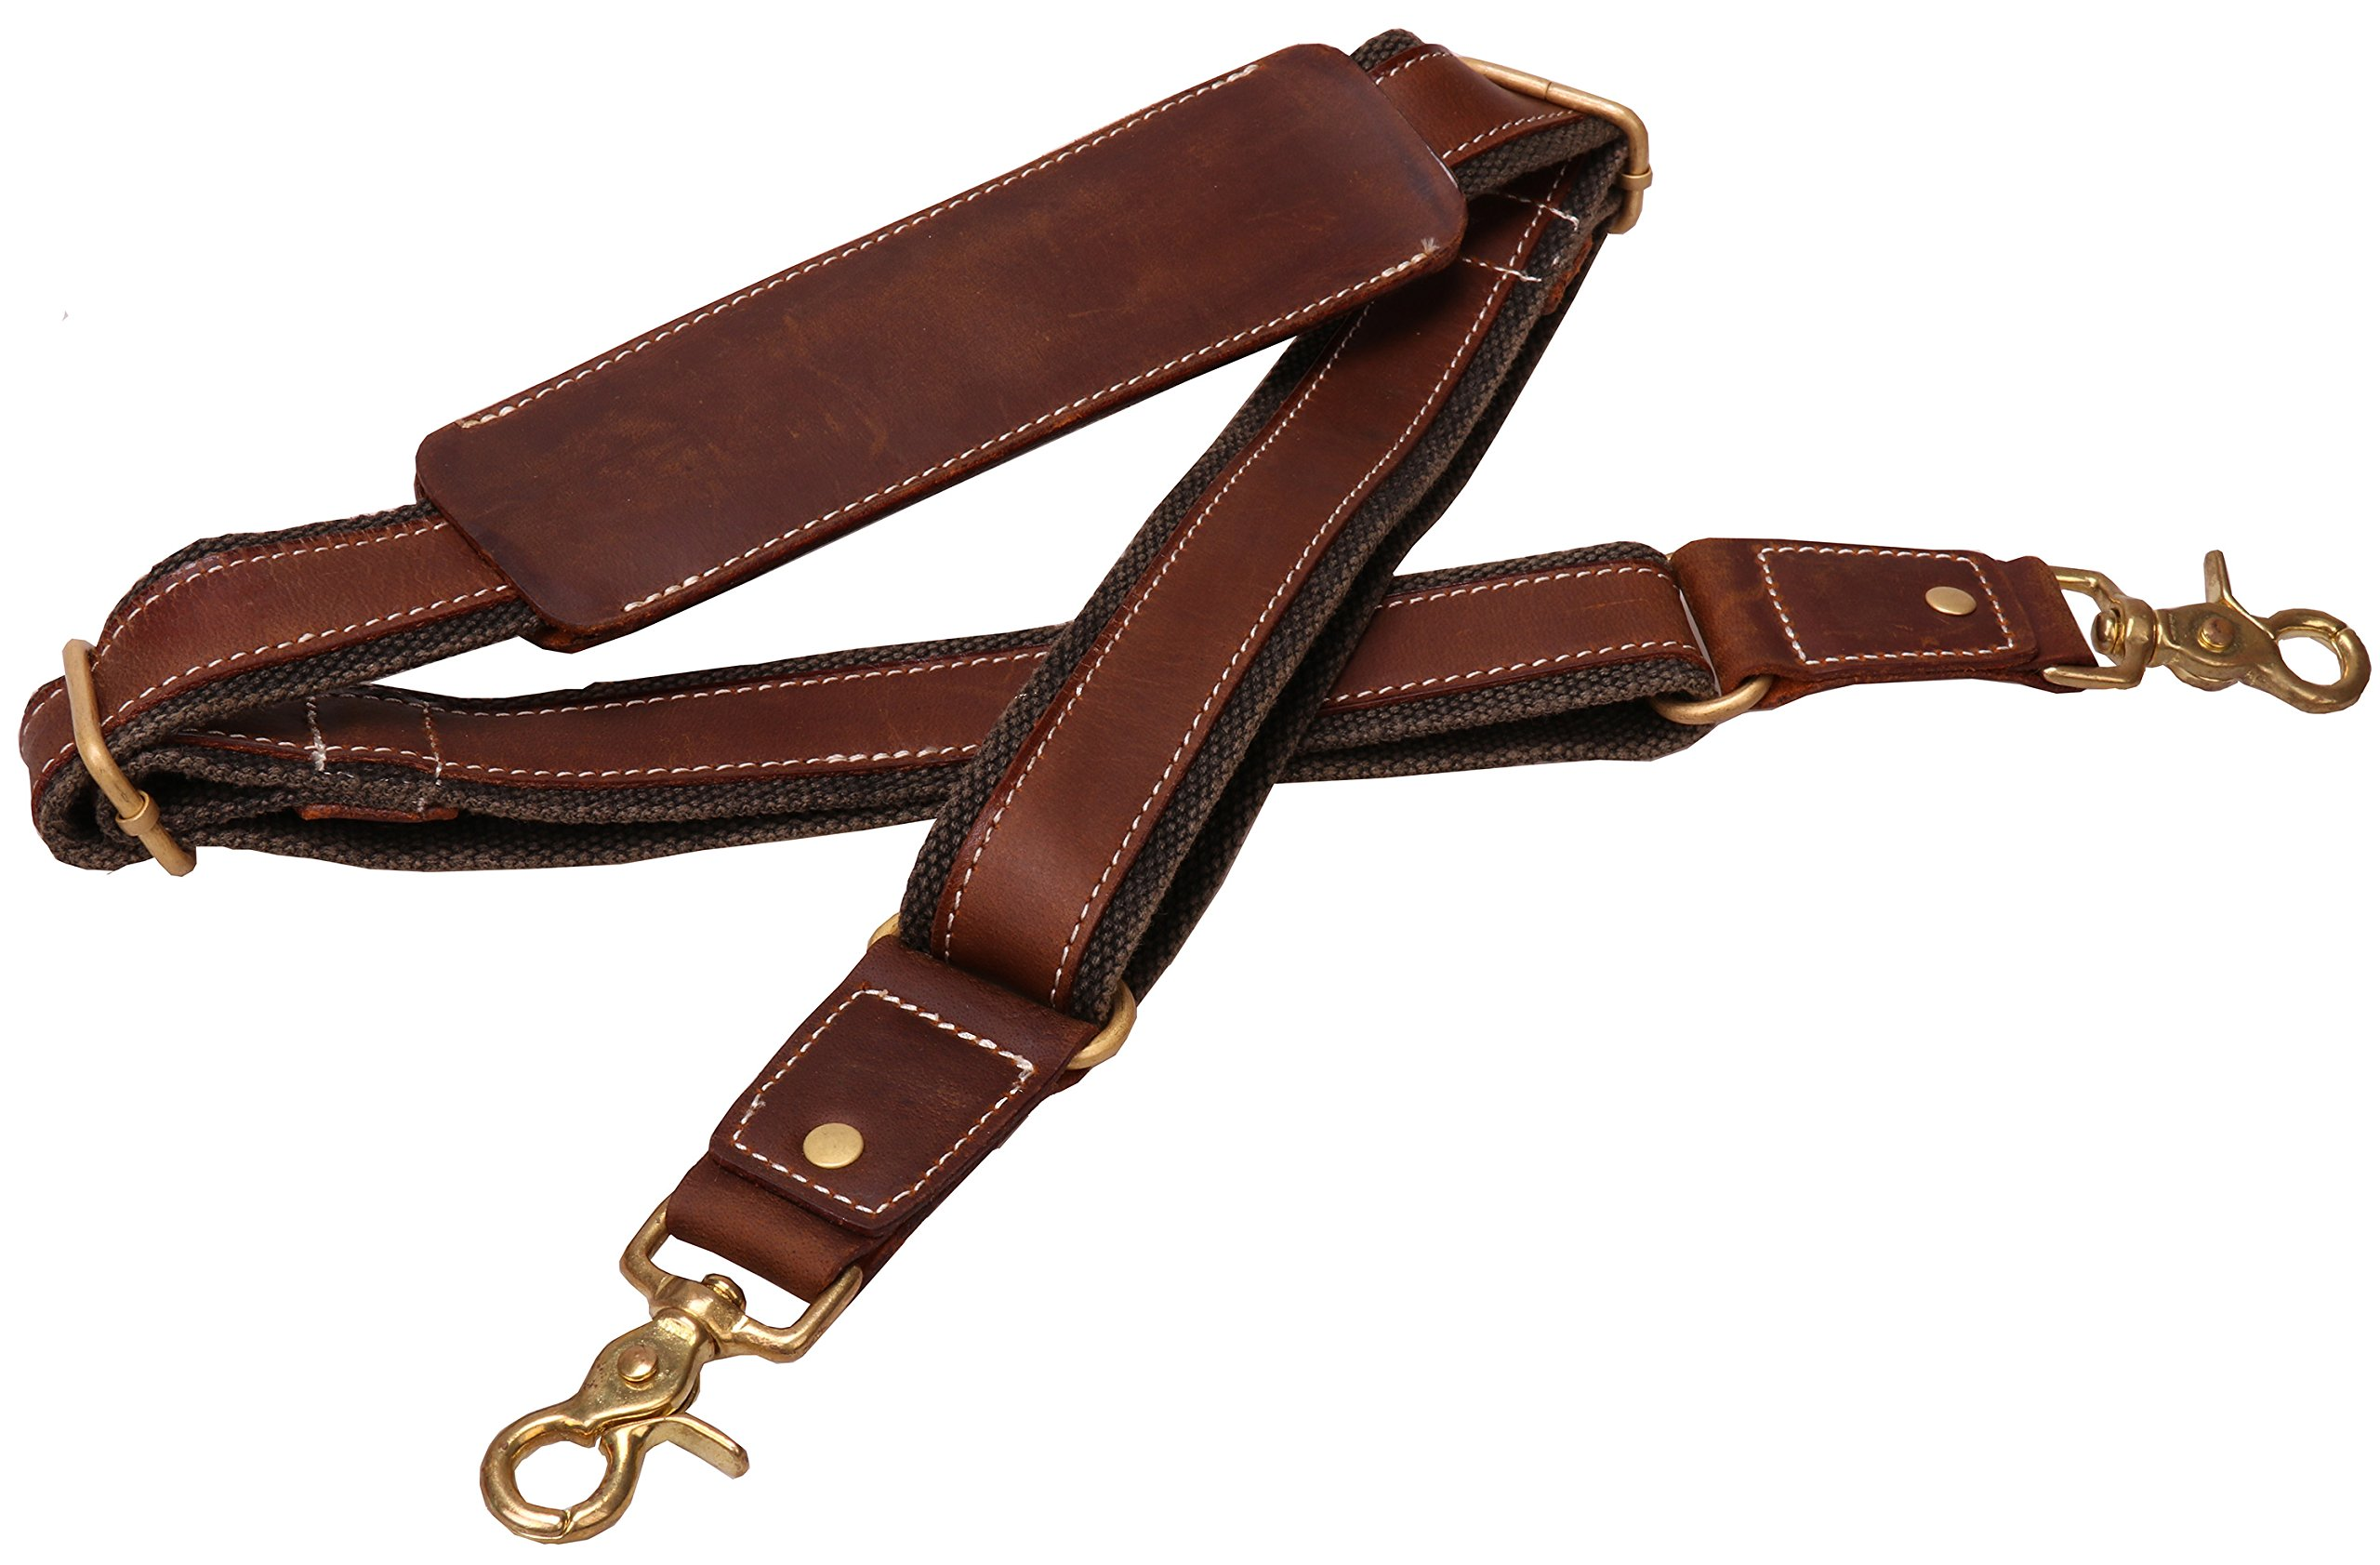 Iblue Genuine Leather Padded Shoulder Strap For Briefcase Luggage Bag #J3 (brown 02) by IBLUE